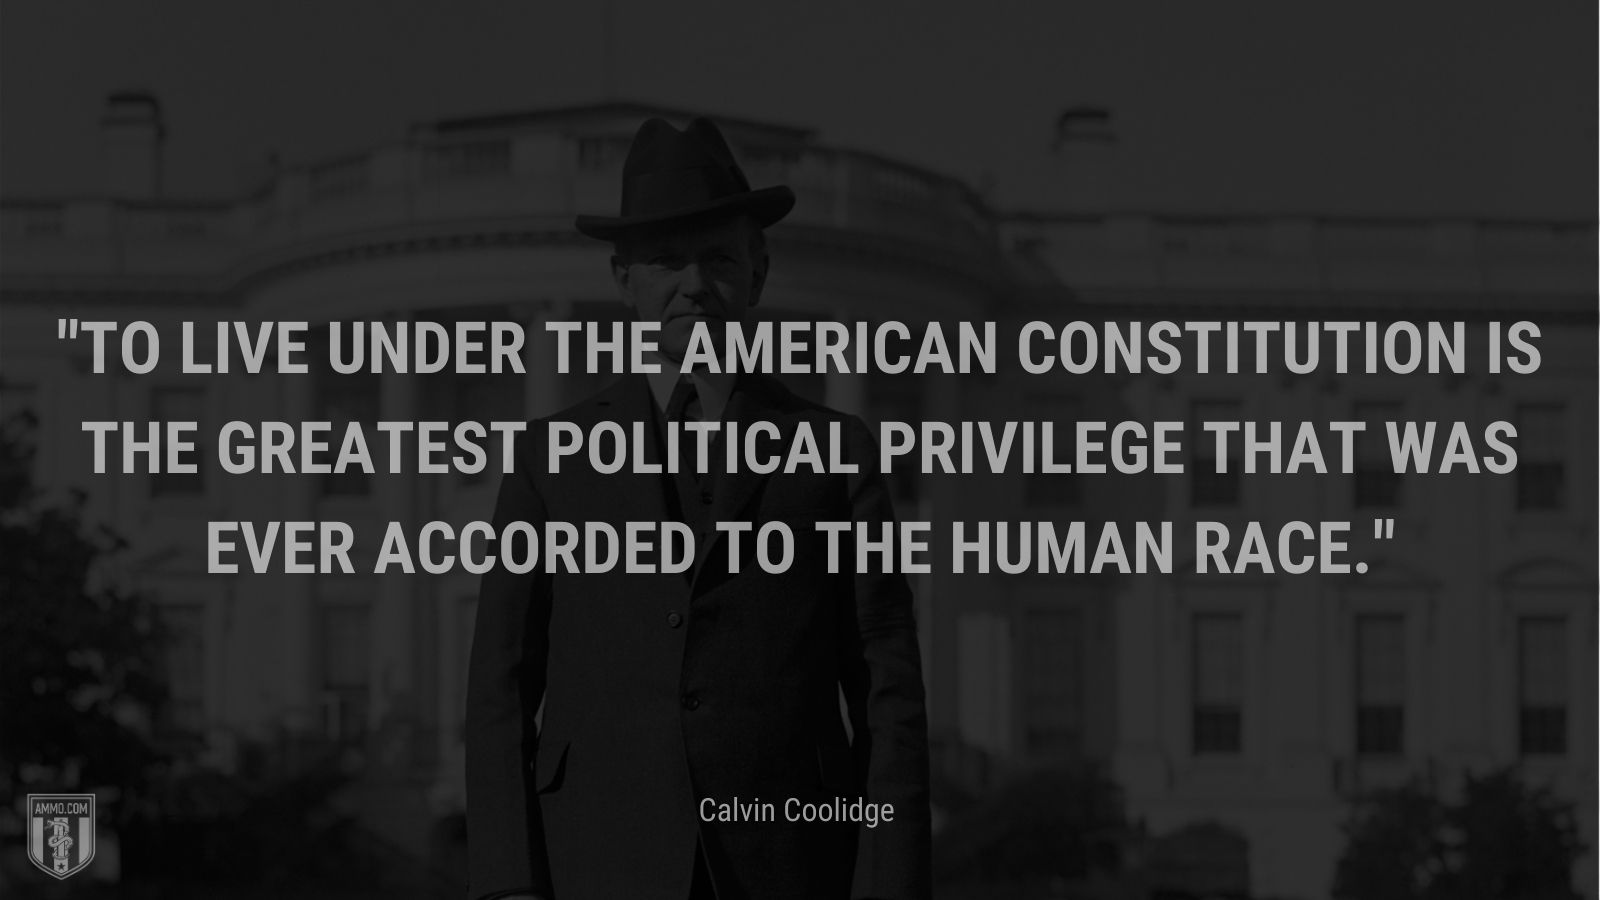 """""""To live under the American Constitution is the greatest political privilege that was ever accorded to the human race."""" - Calvin Coolidge"""